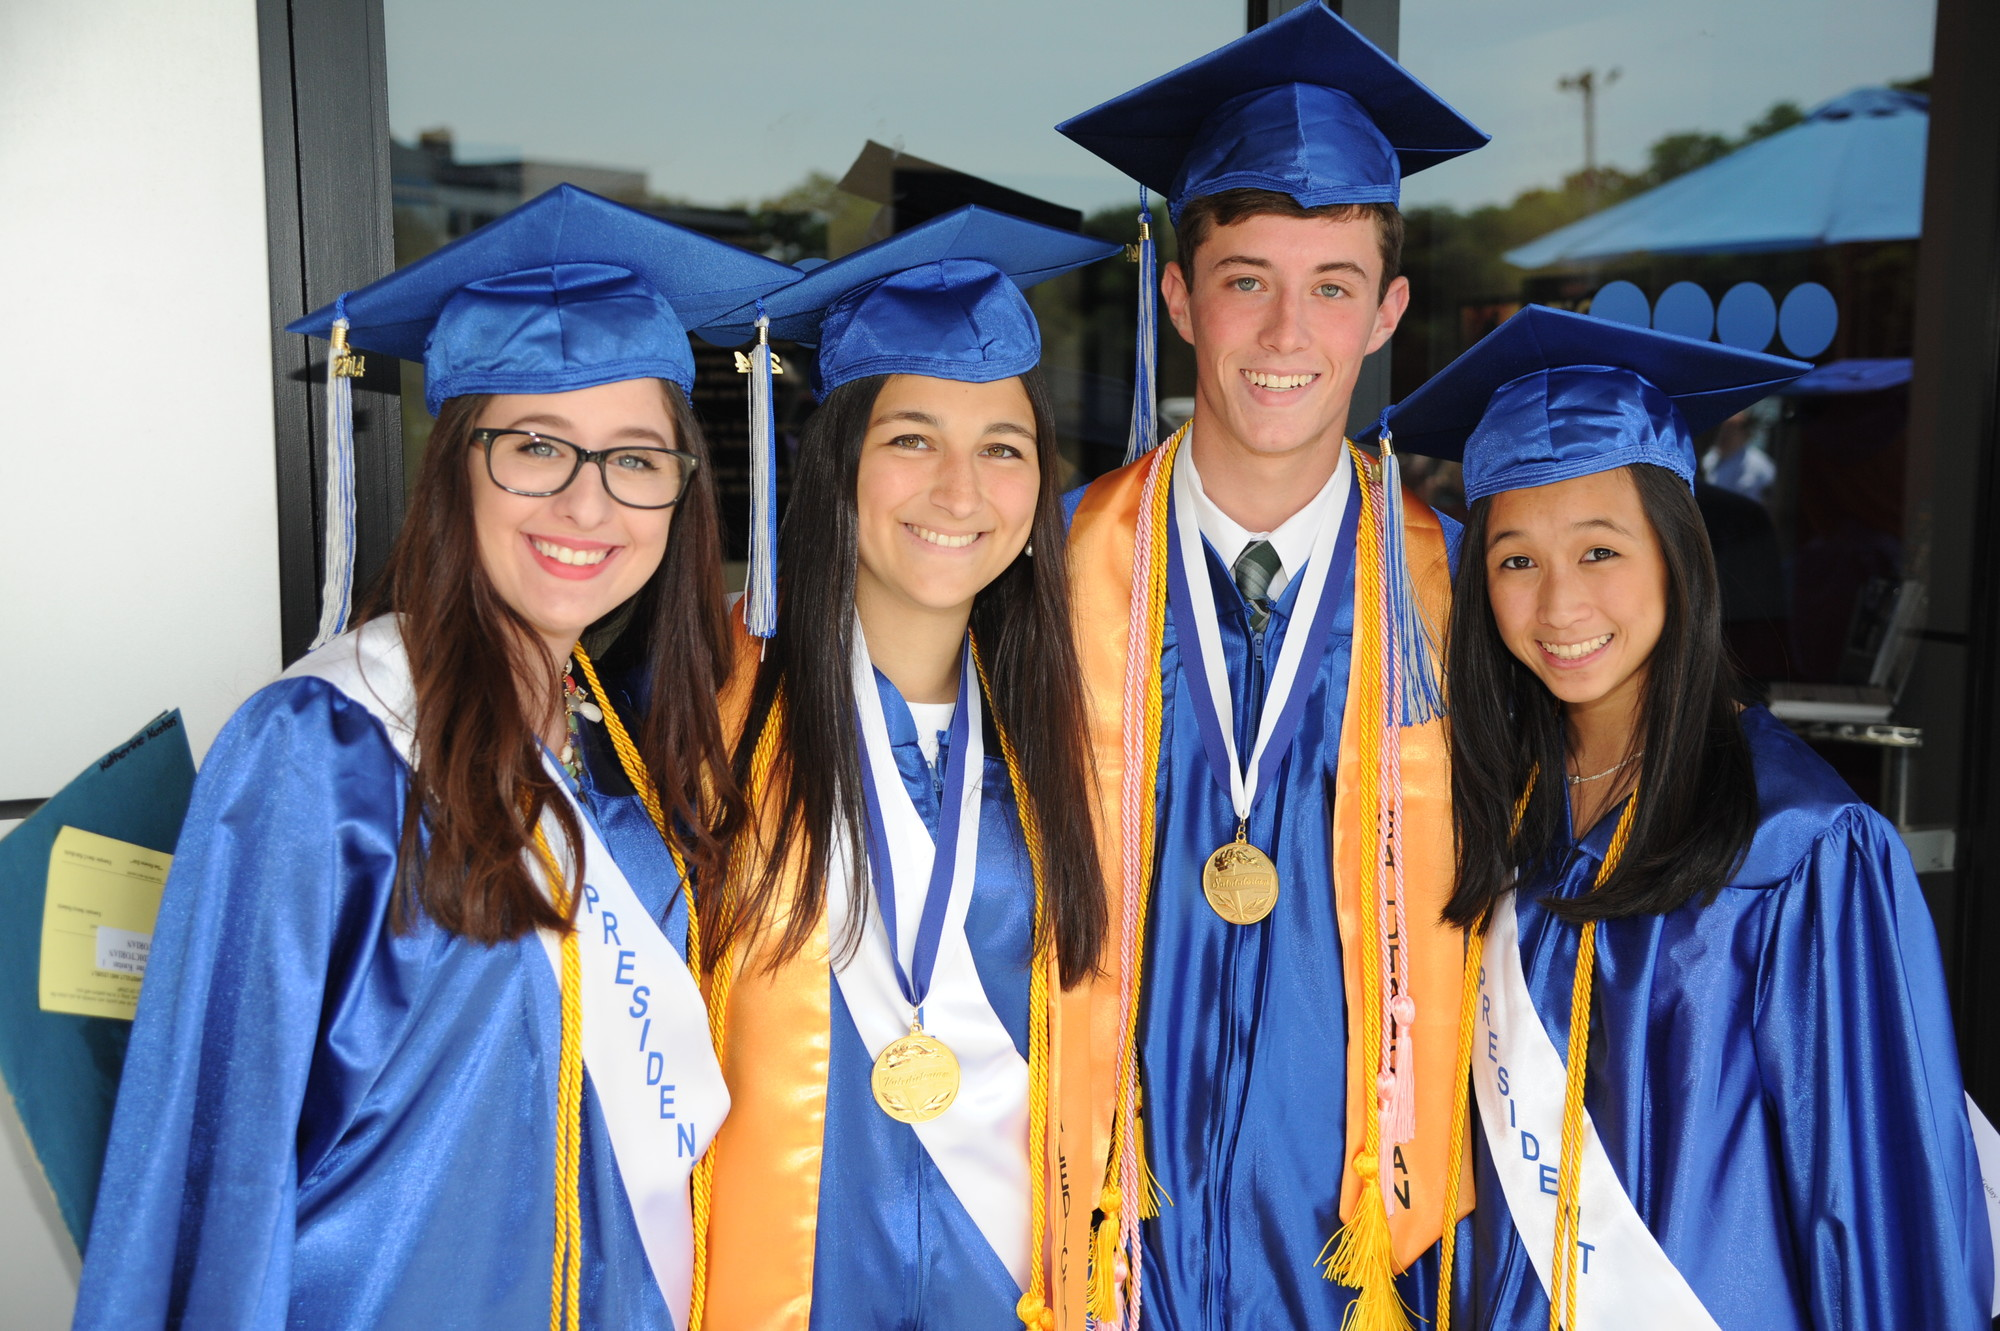 Class President Rebecca Peretz, valedictorian Katherine Kustas, salutatorian Alexander Boyd and Vice President Kaitlin Woo led the class of 2014.